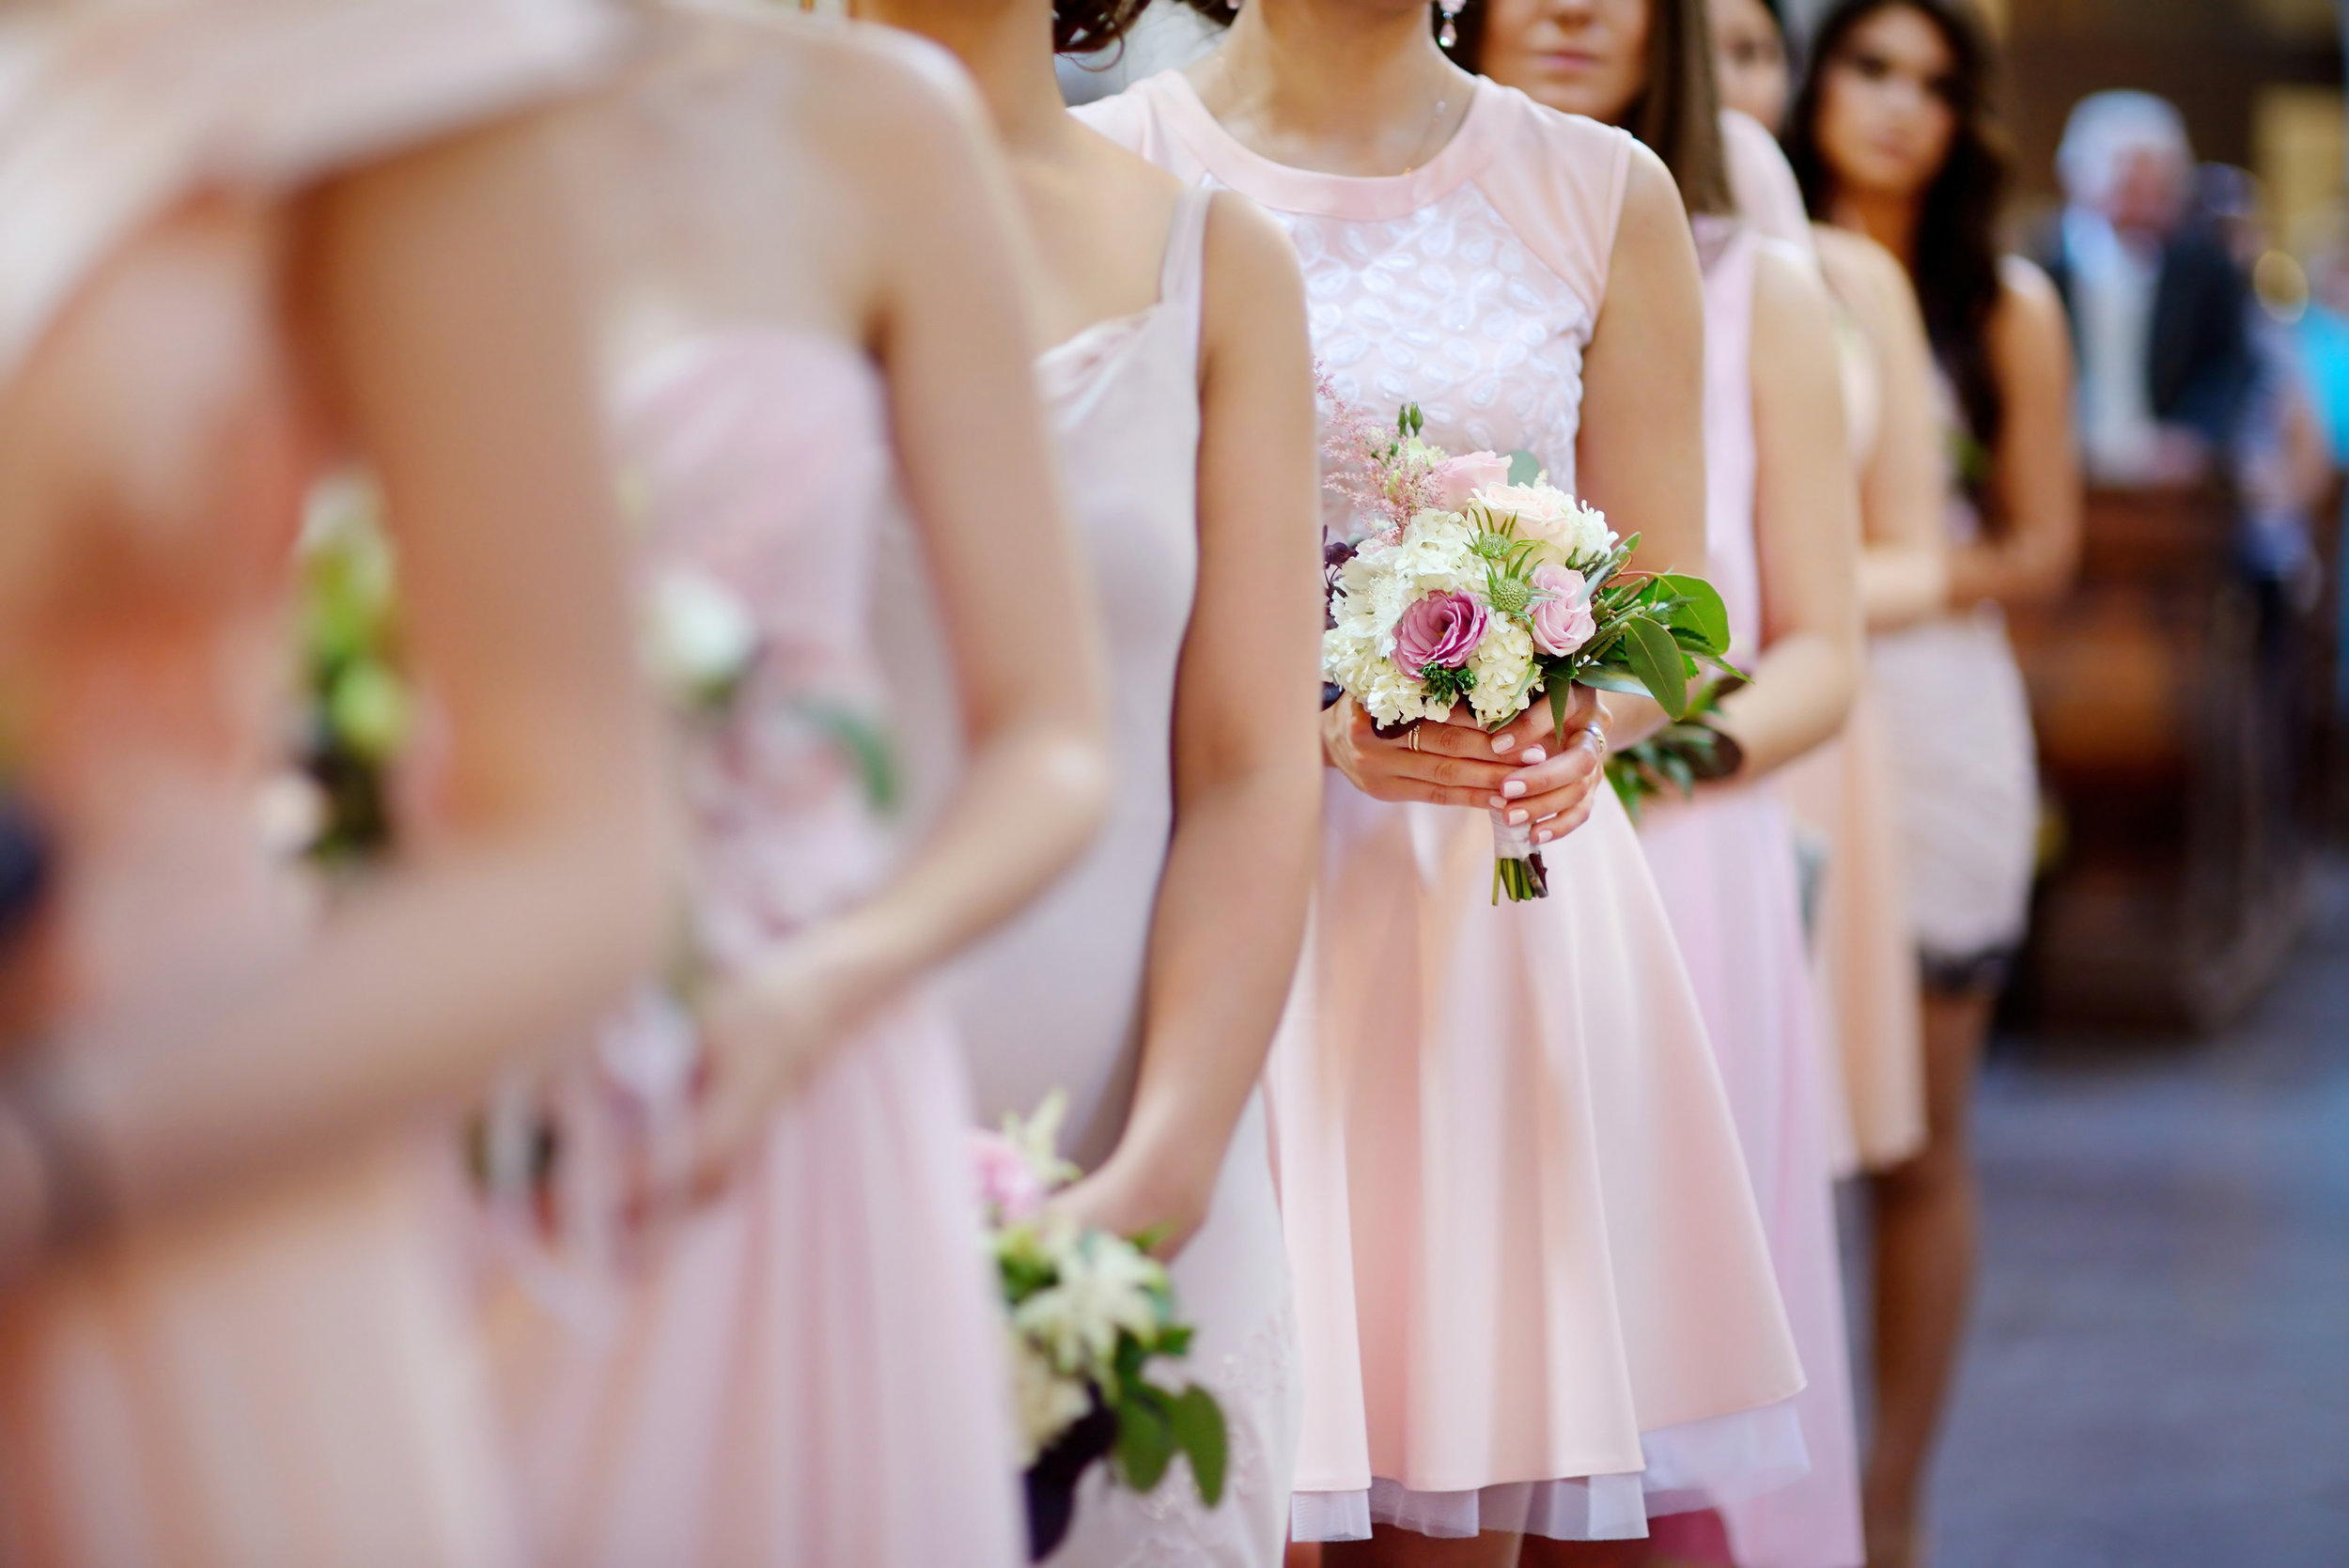 Maid of honor in wedding procession